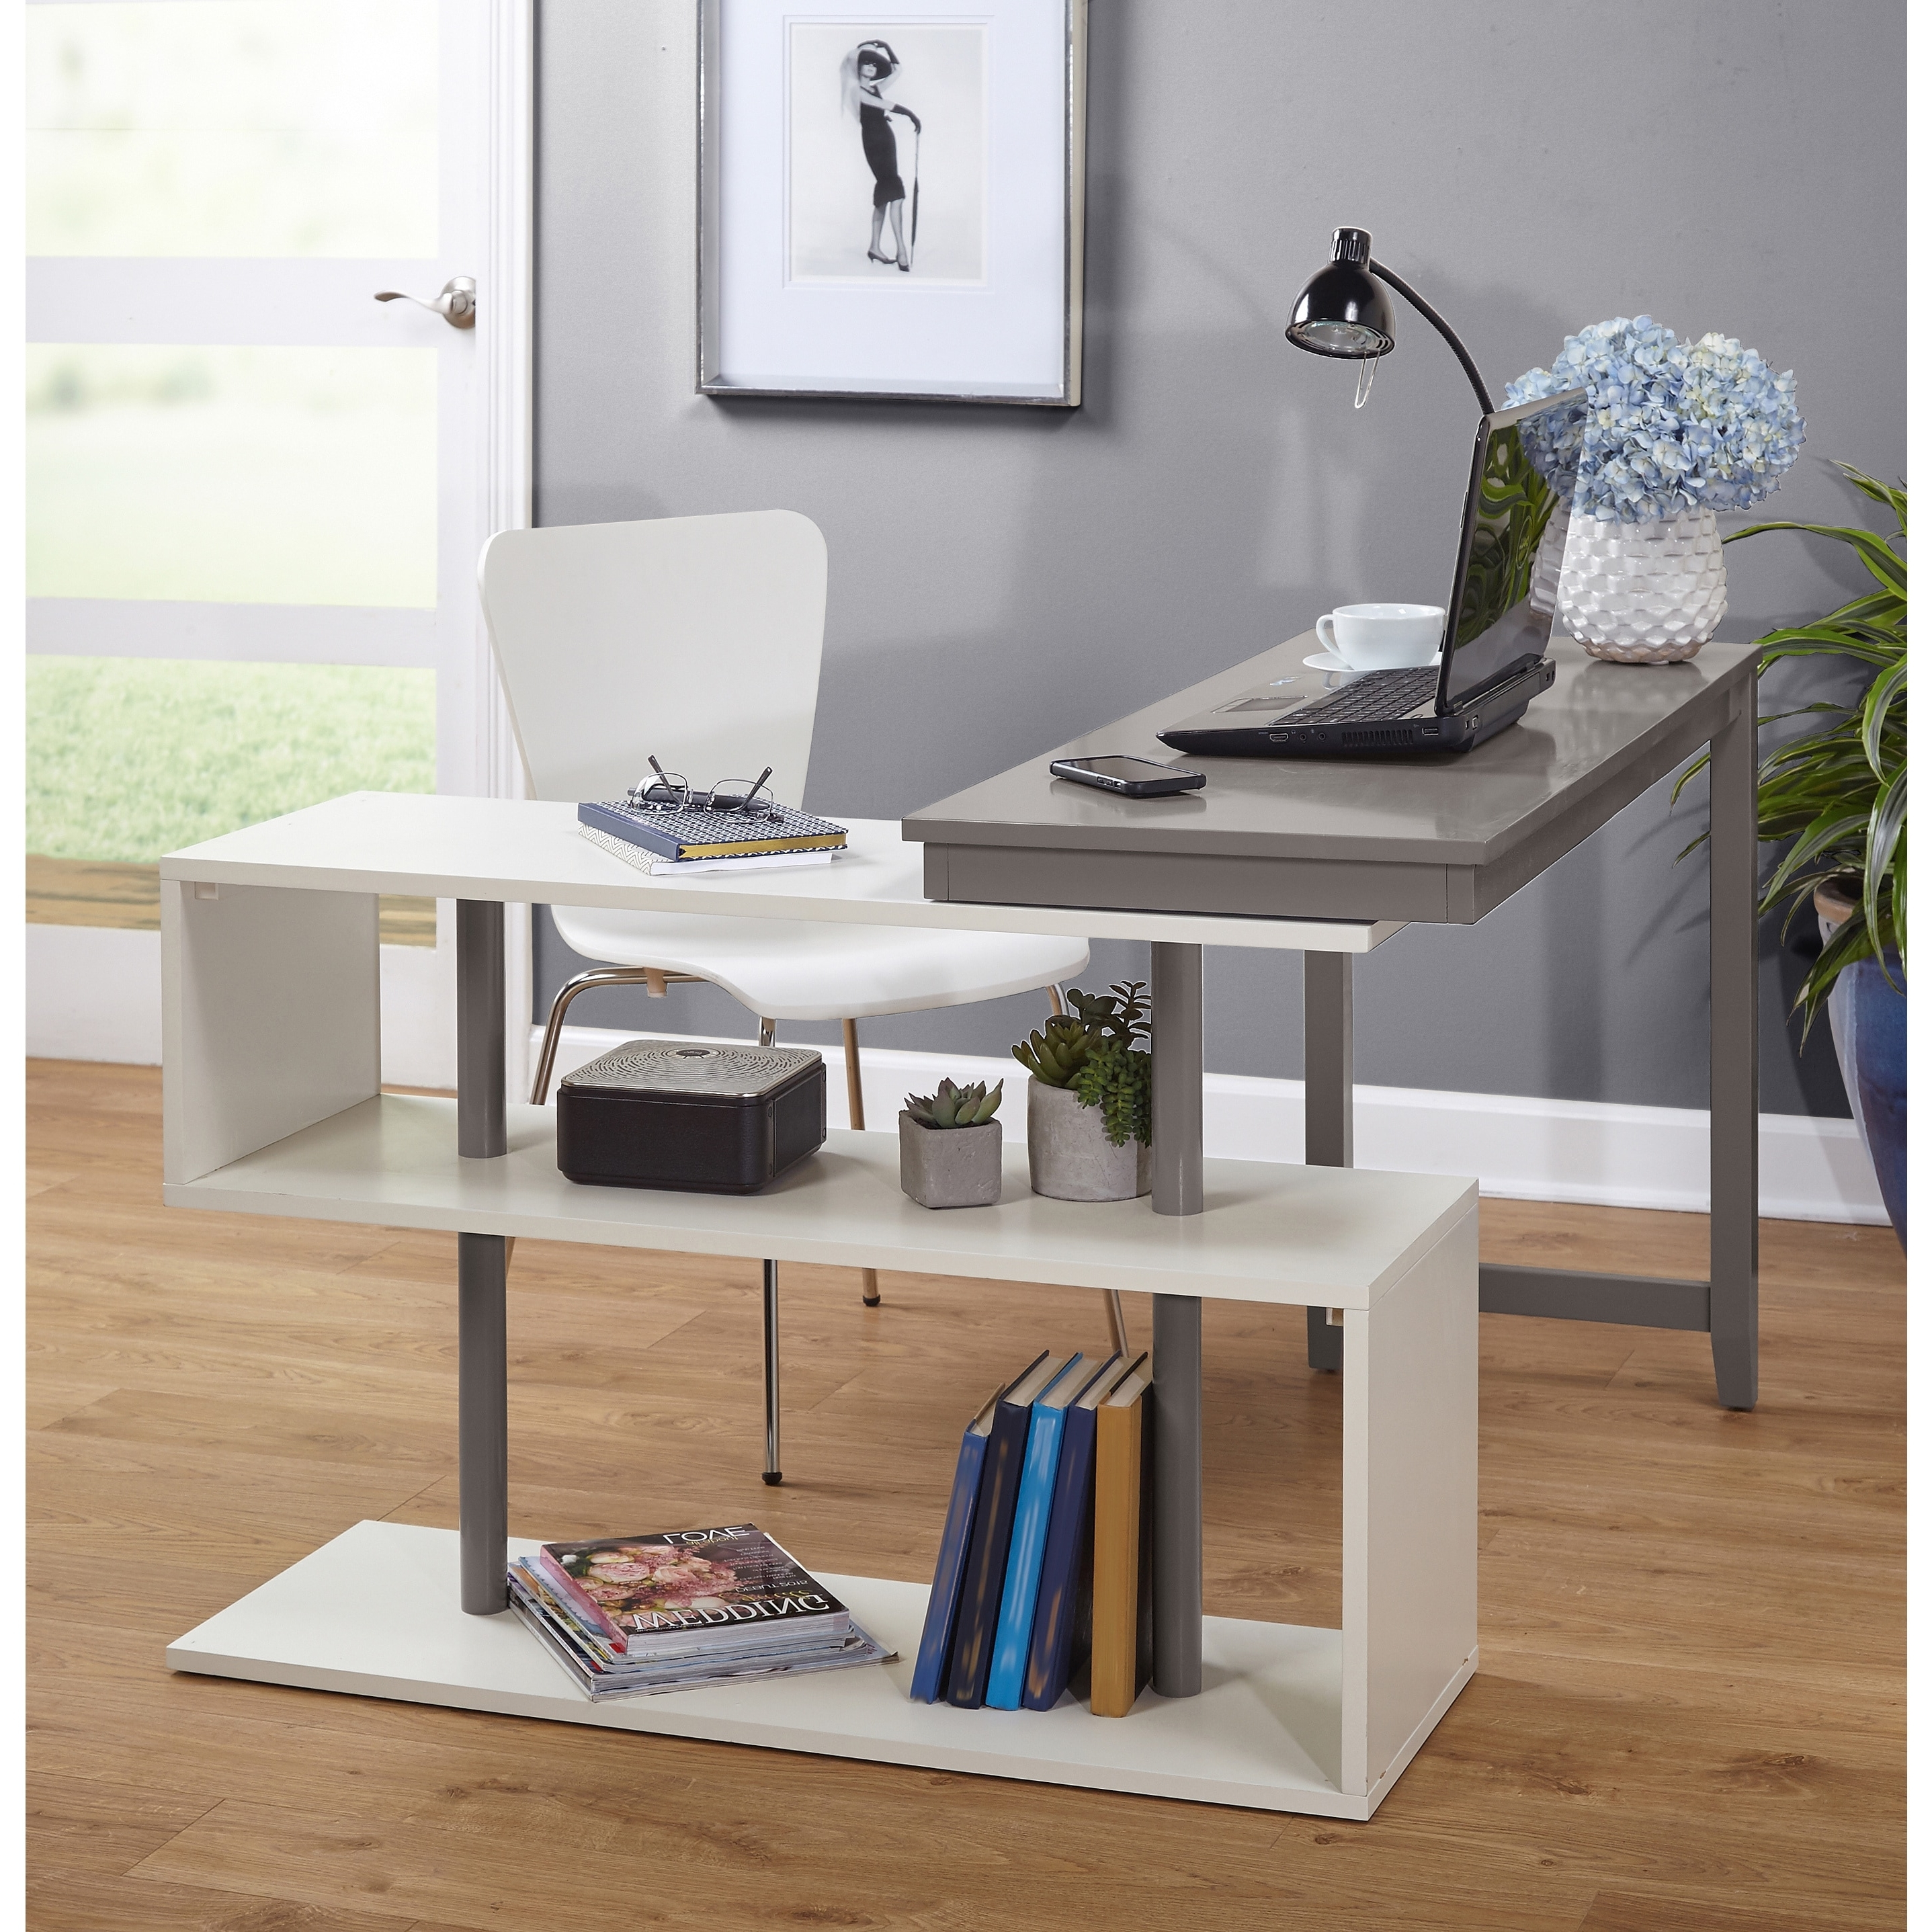 Computer Desks Under $300 Intended For Widely Used L Shaped Desks For Less (Gallery 10 of 20)